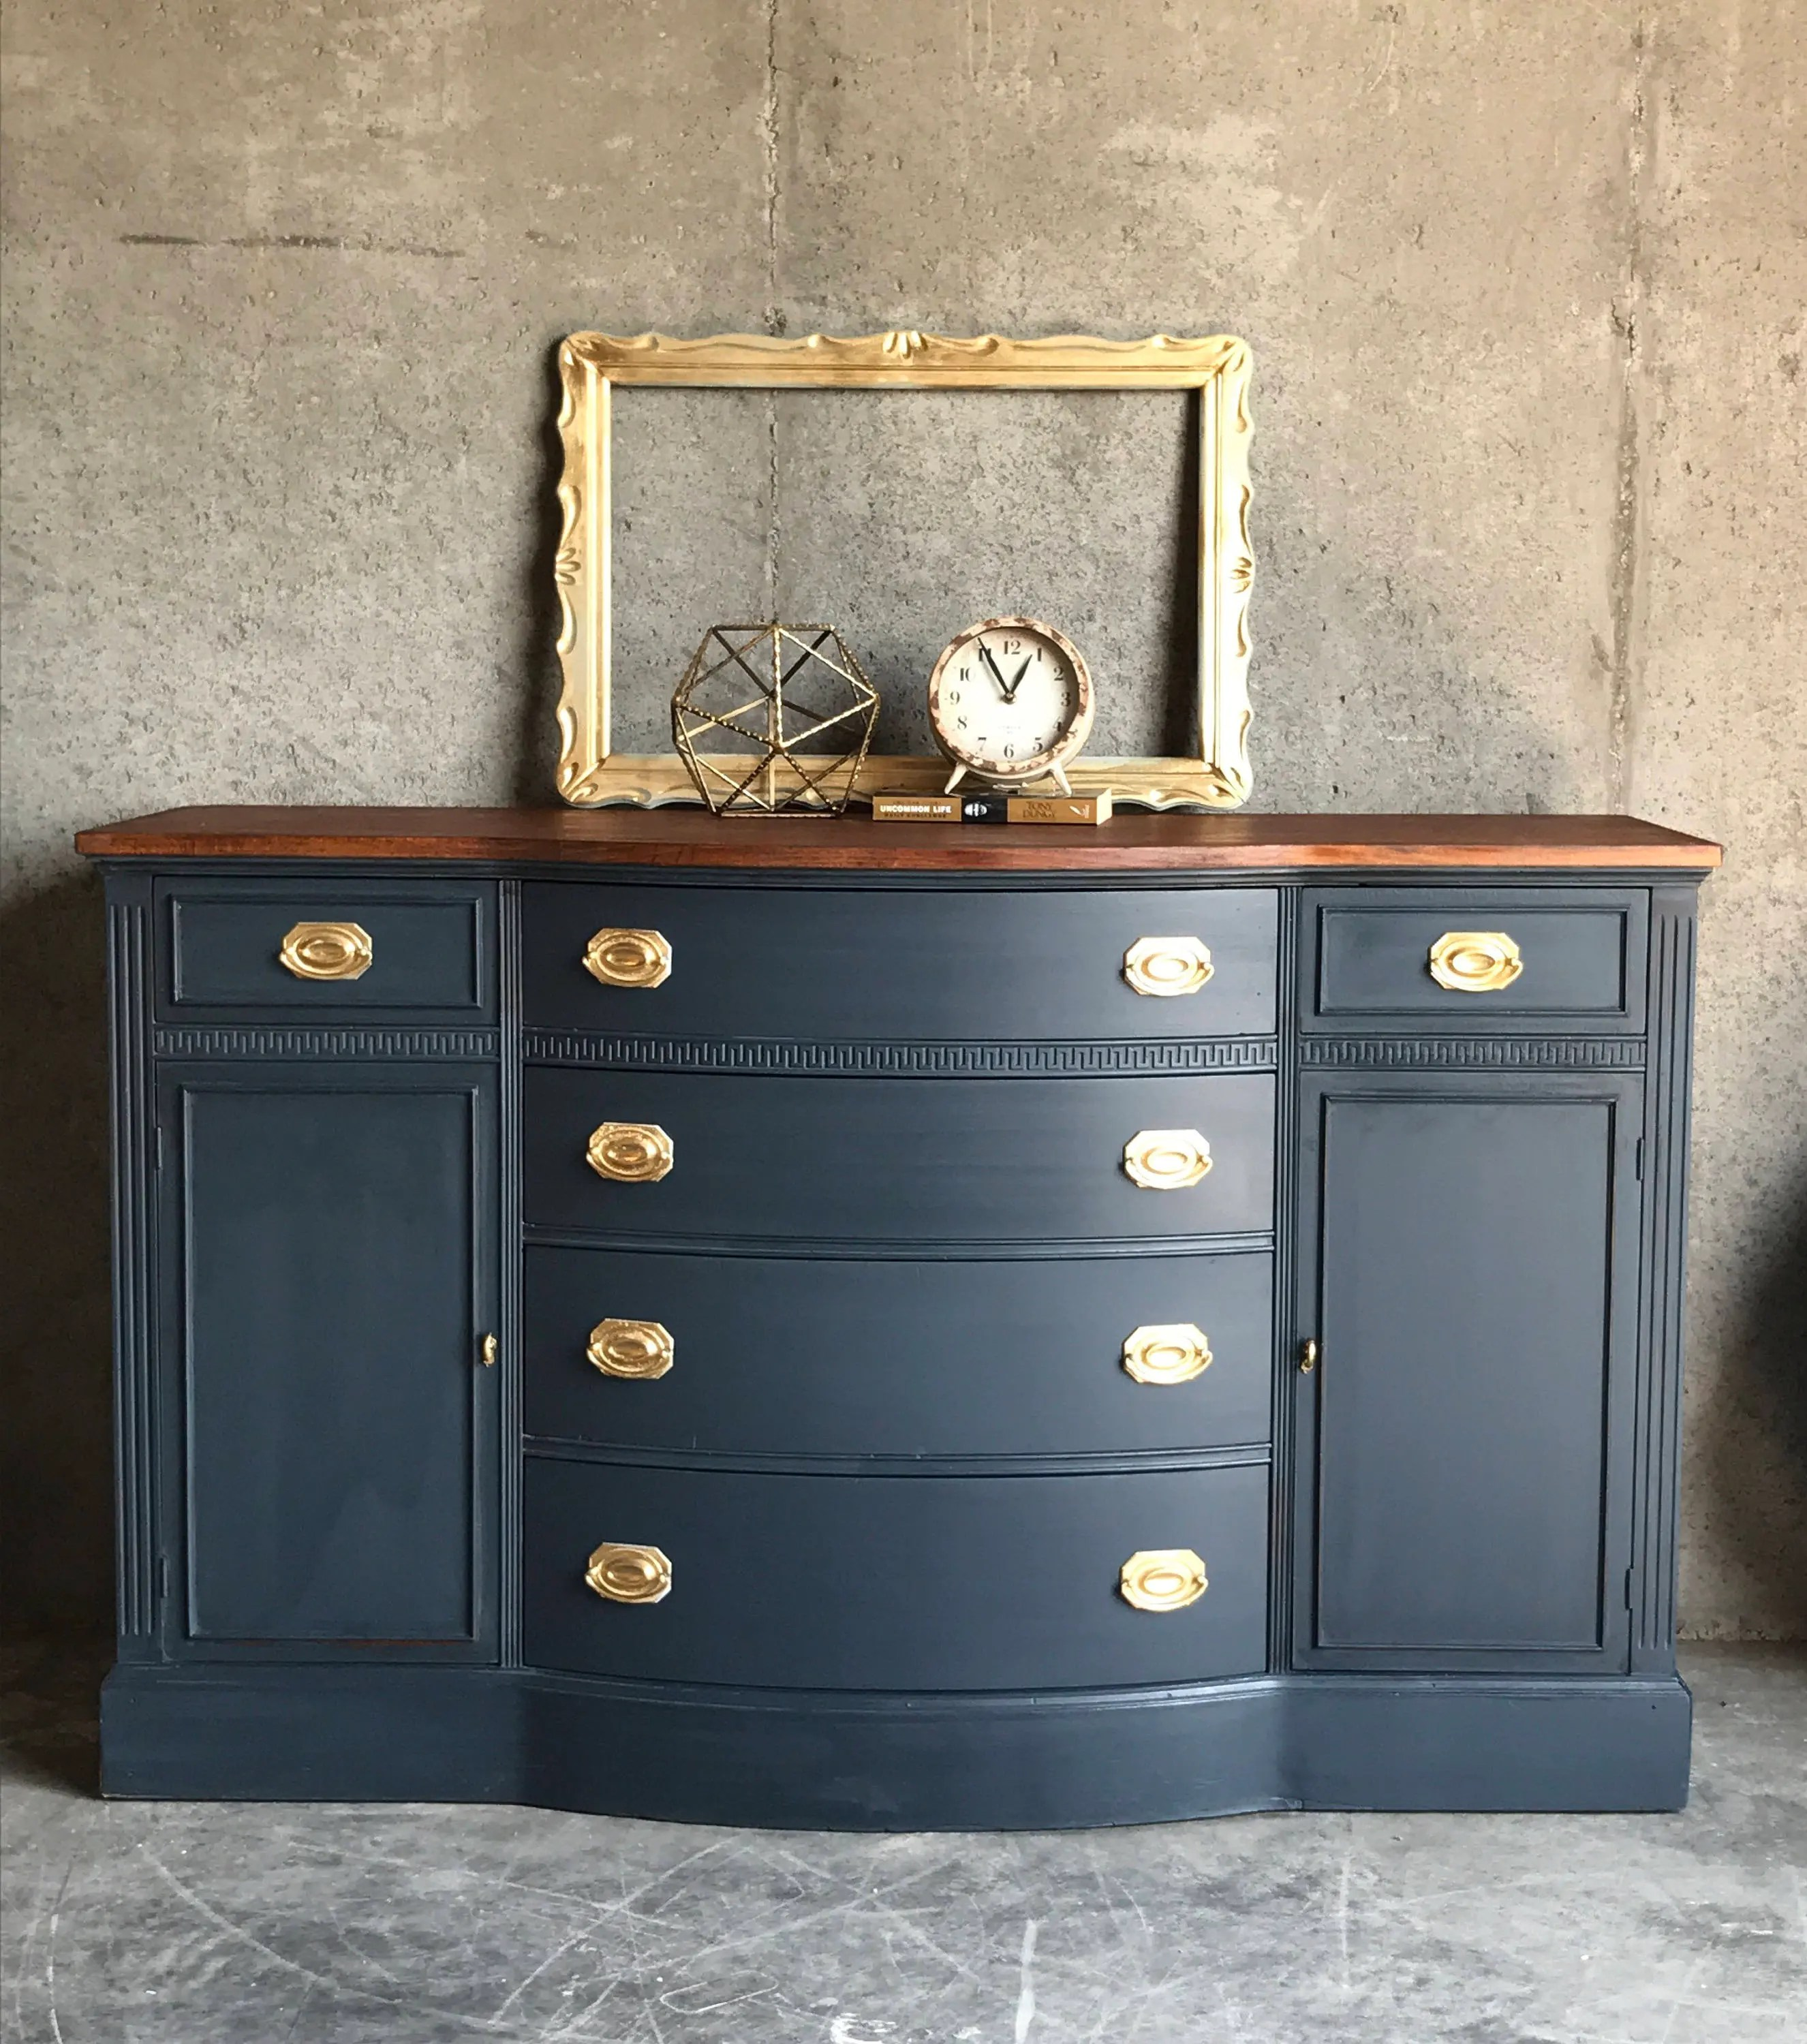 Buffet Sideboard Blue Your Custom Navy Blue Buffet Sideboard Duncan Phyfe Living Room Furniture Buffet Table Painted Buffet Painted Vanity Console Table